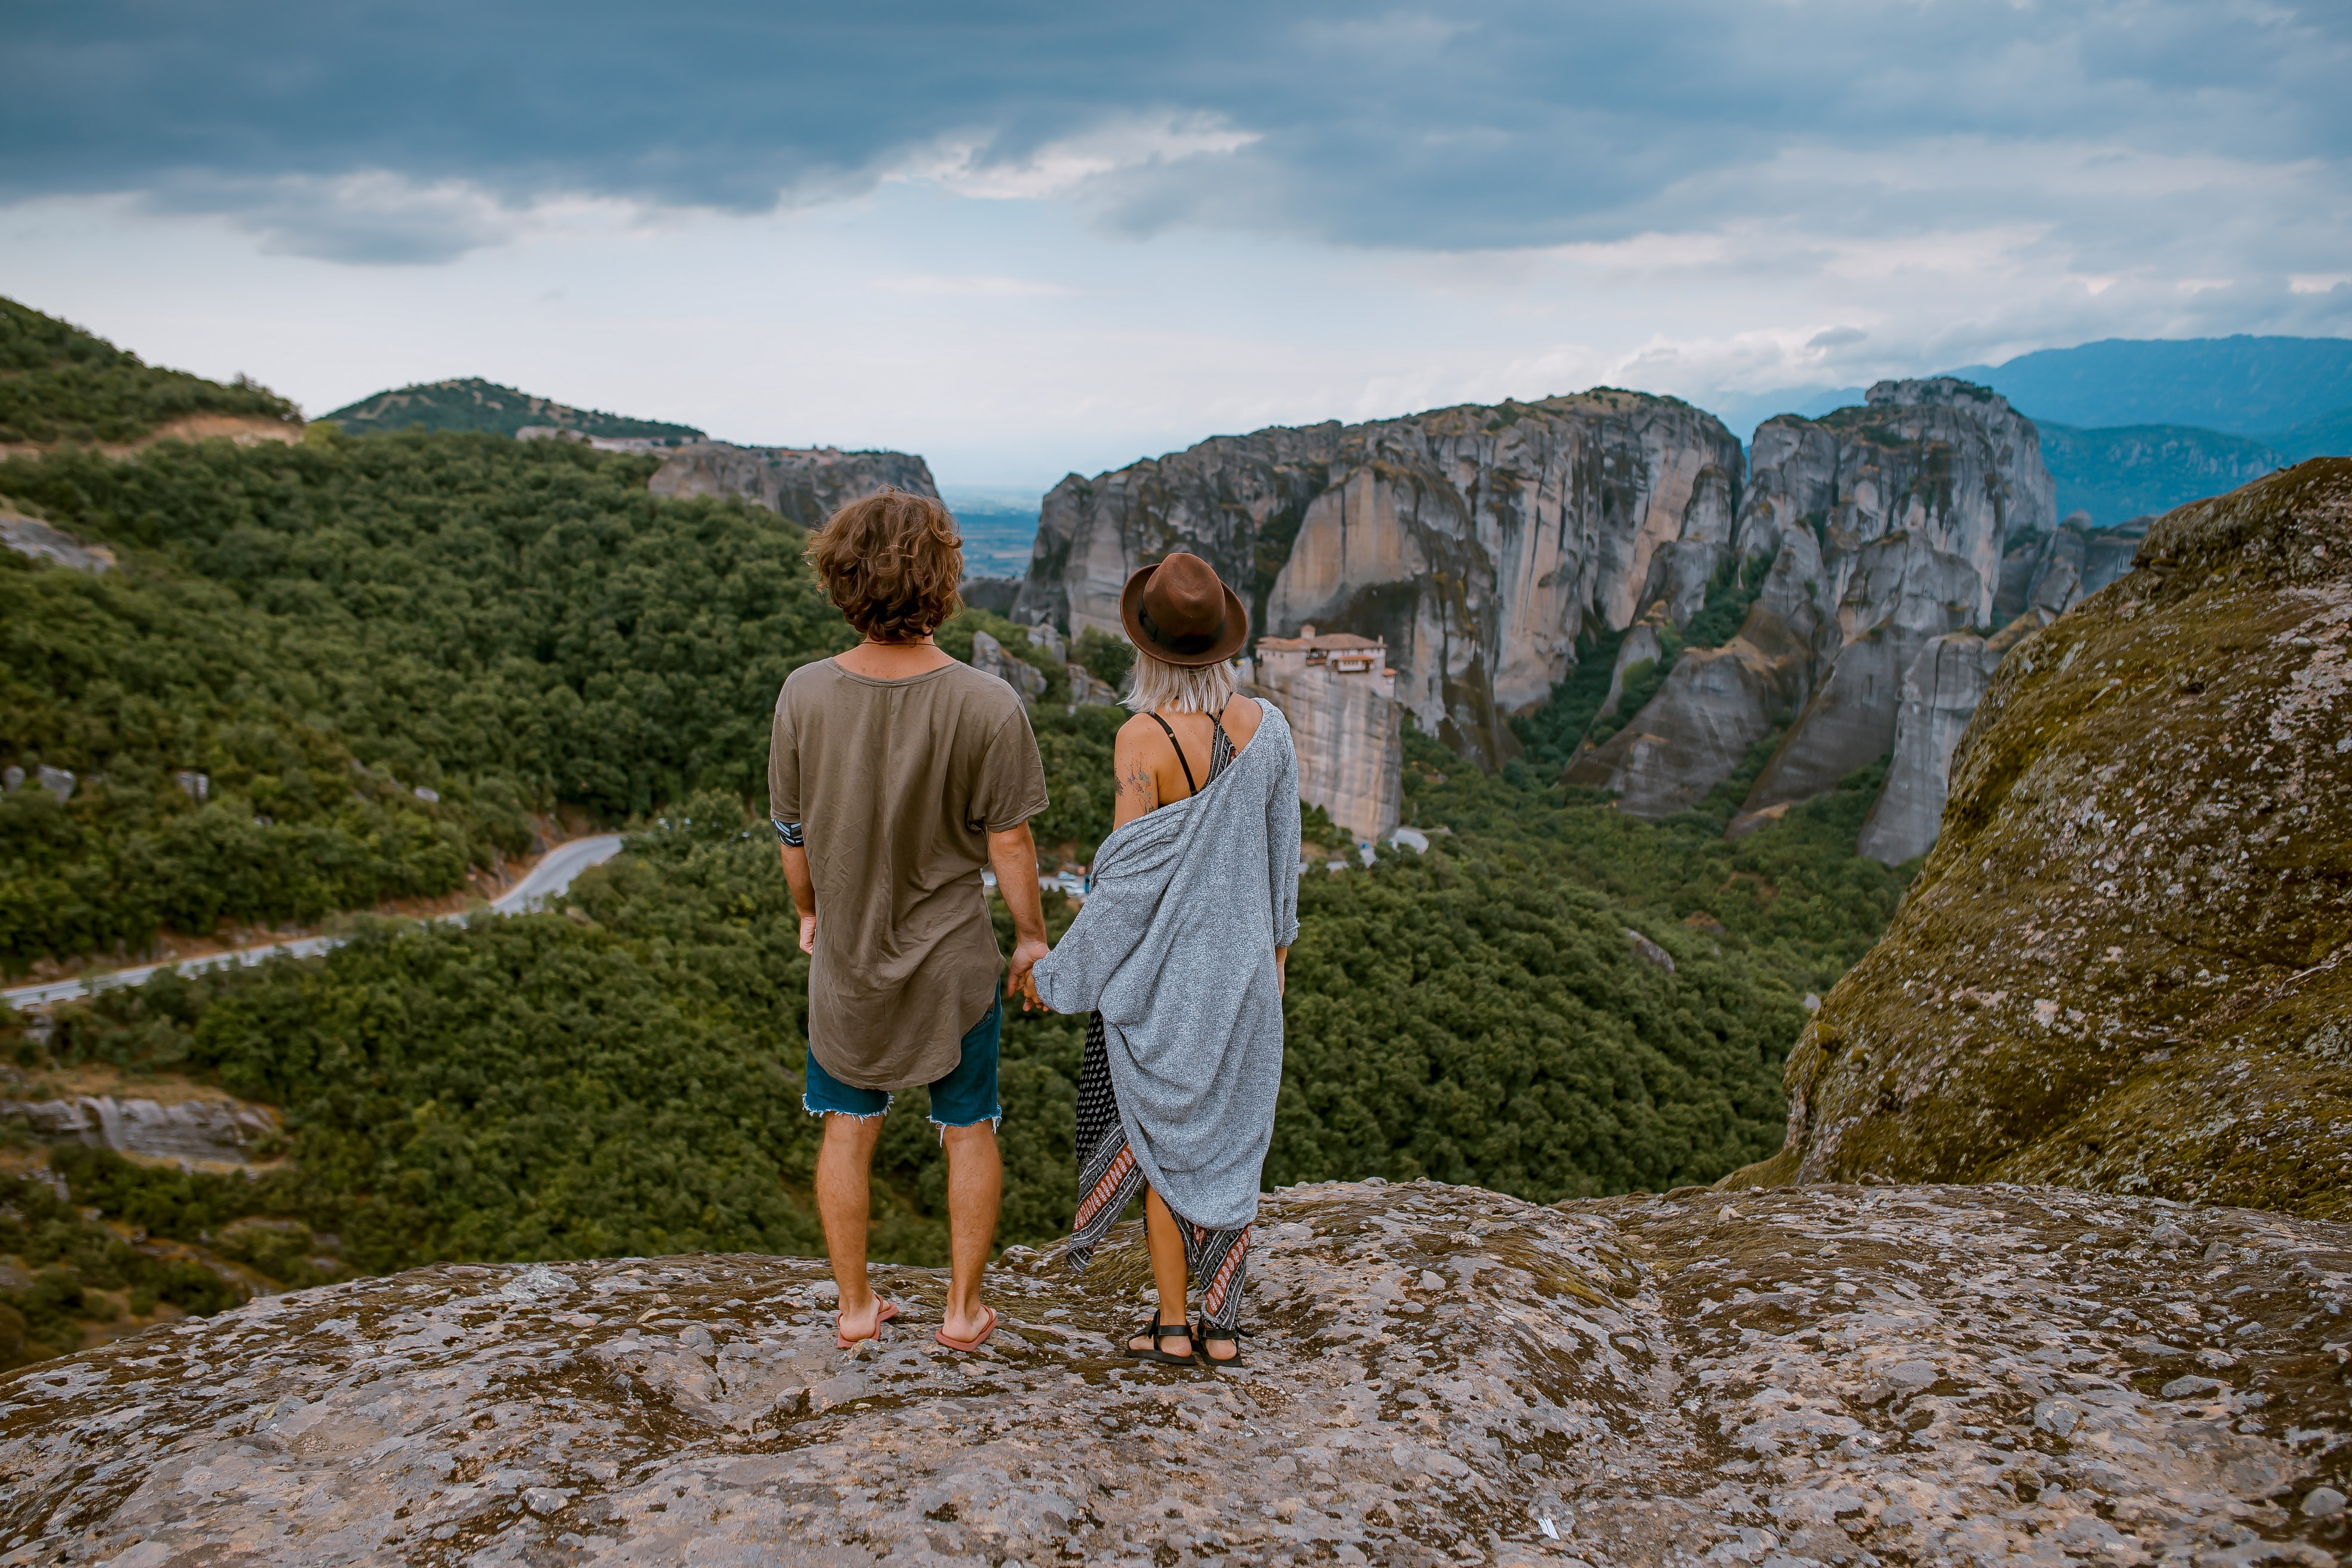 Bohemian couple looks away down from a mountain's crest to the valley below